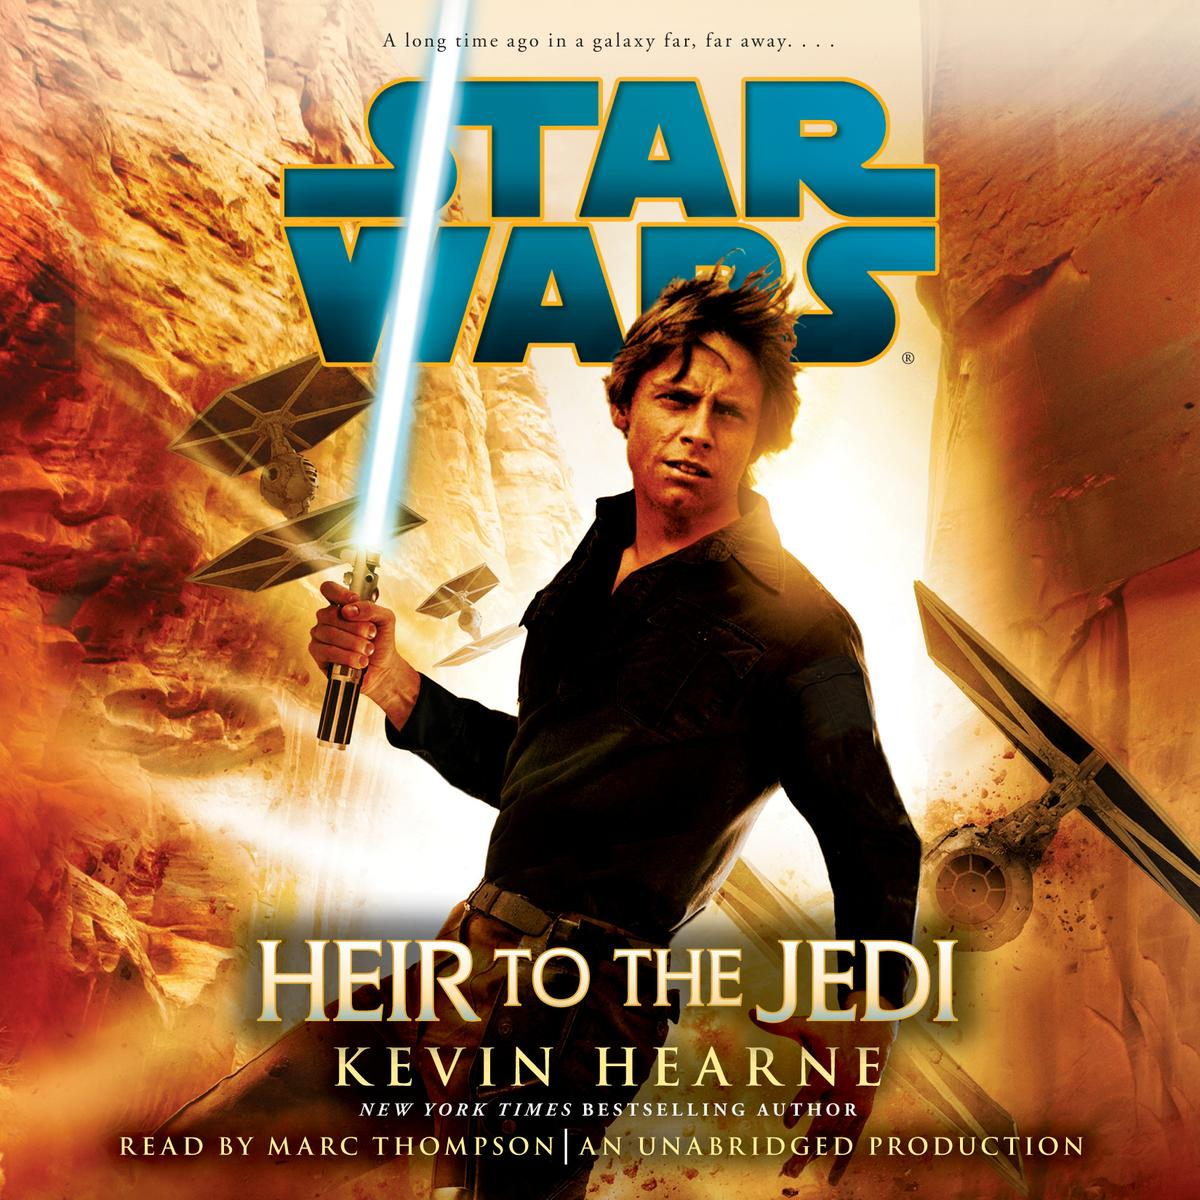 Heir to the Jedi: Star Wars - Audiobook